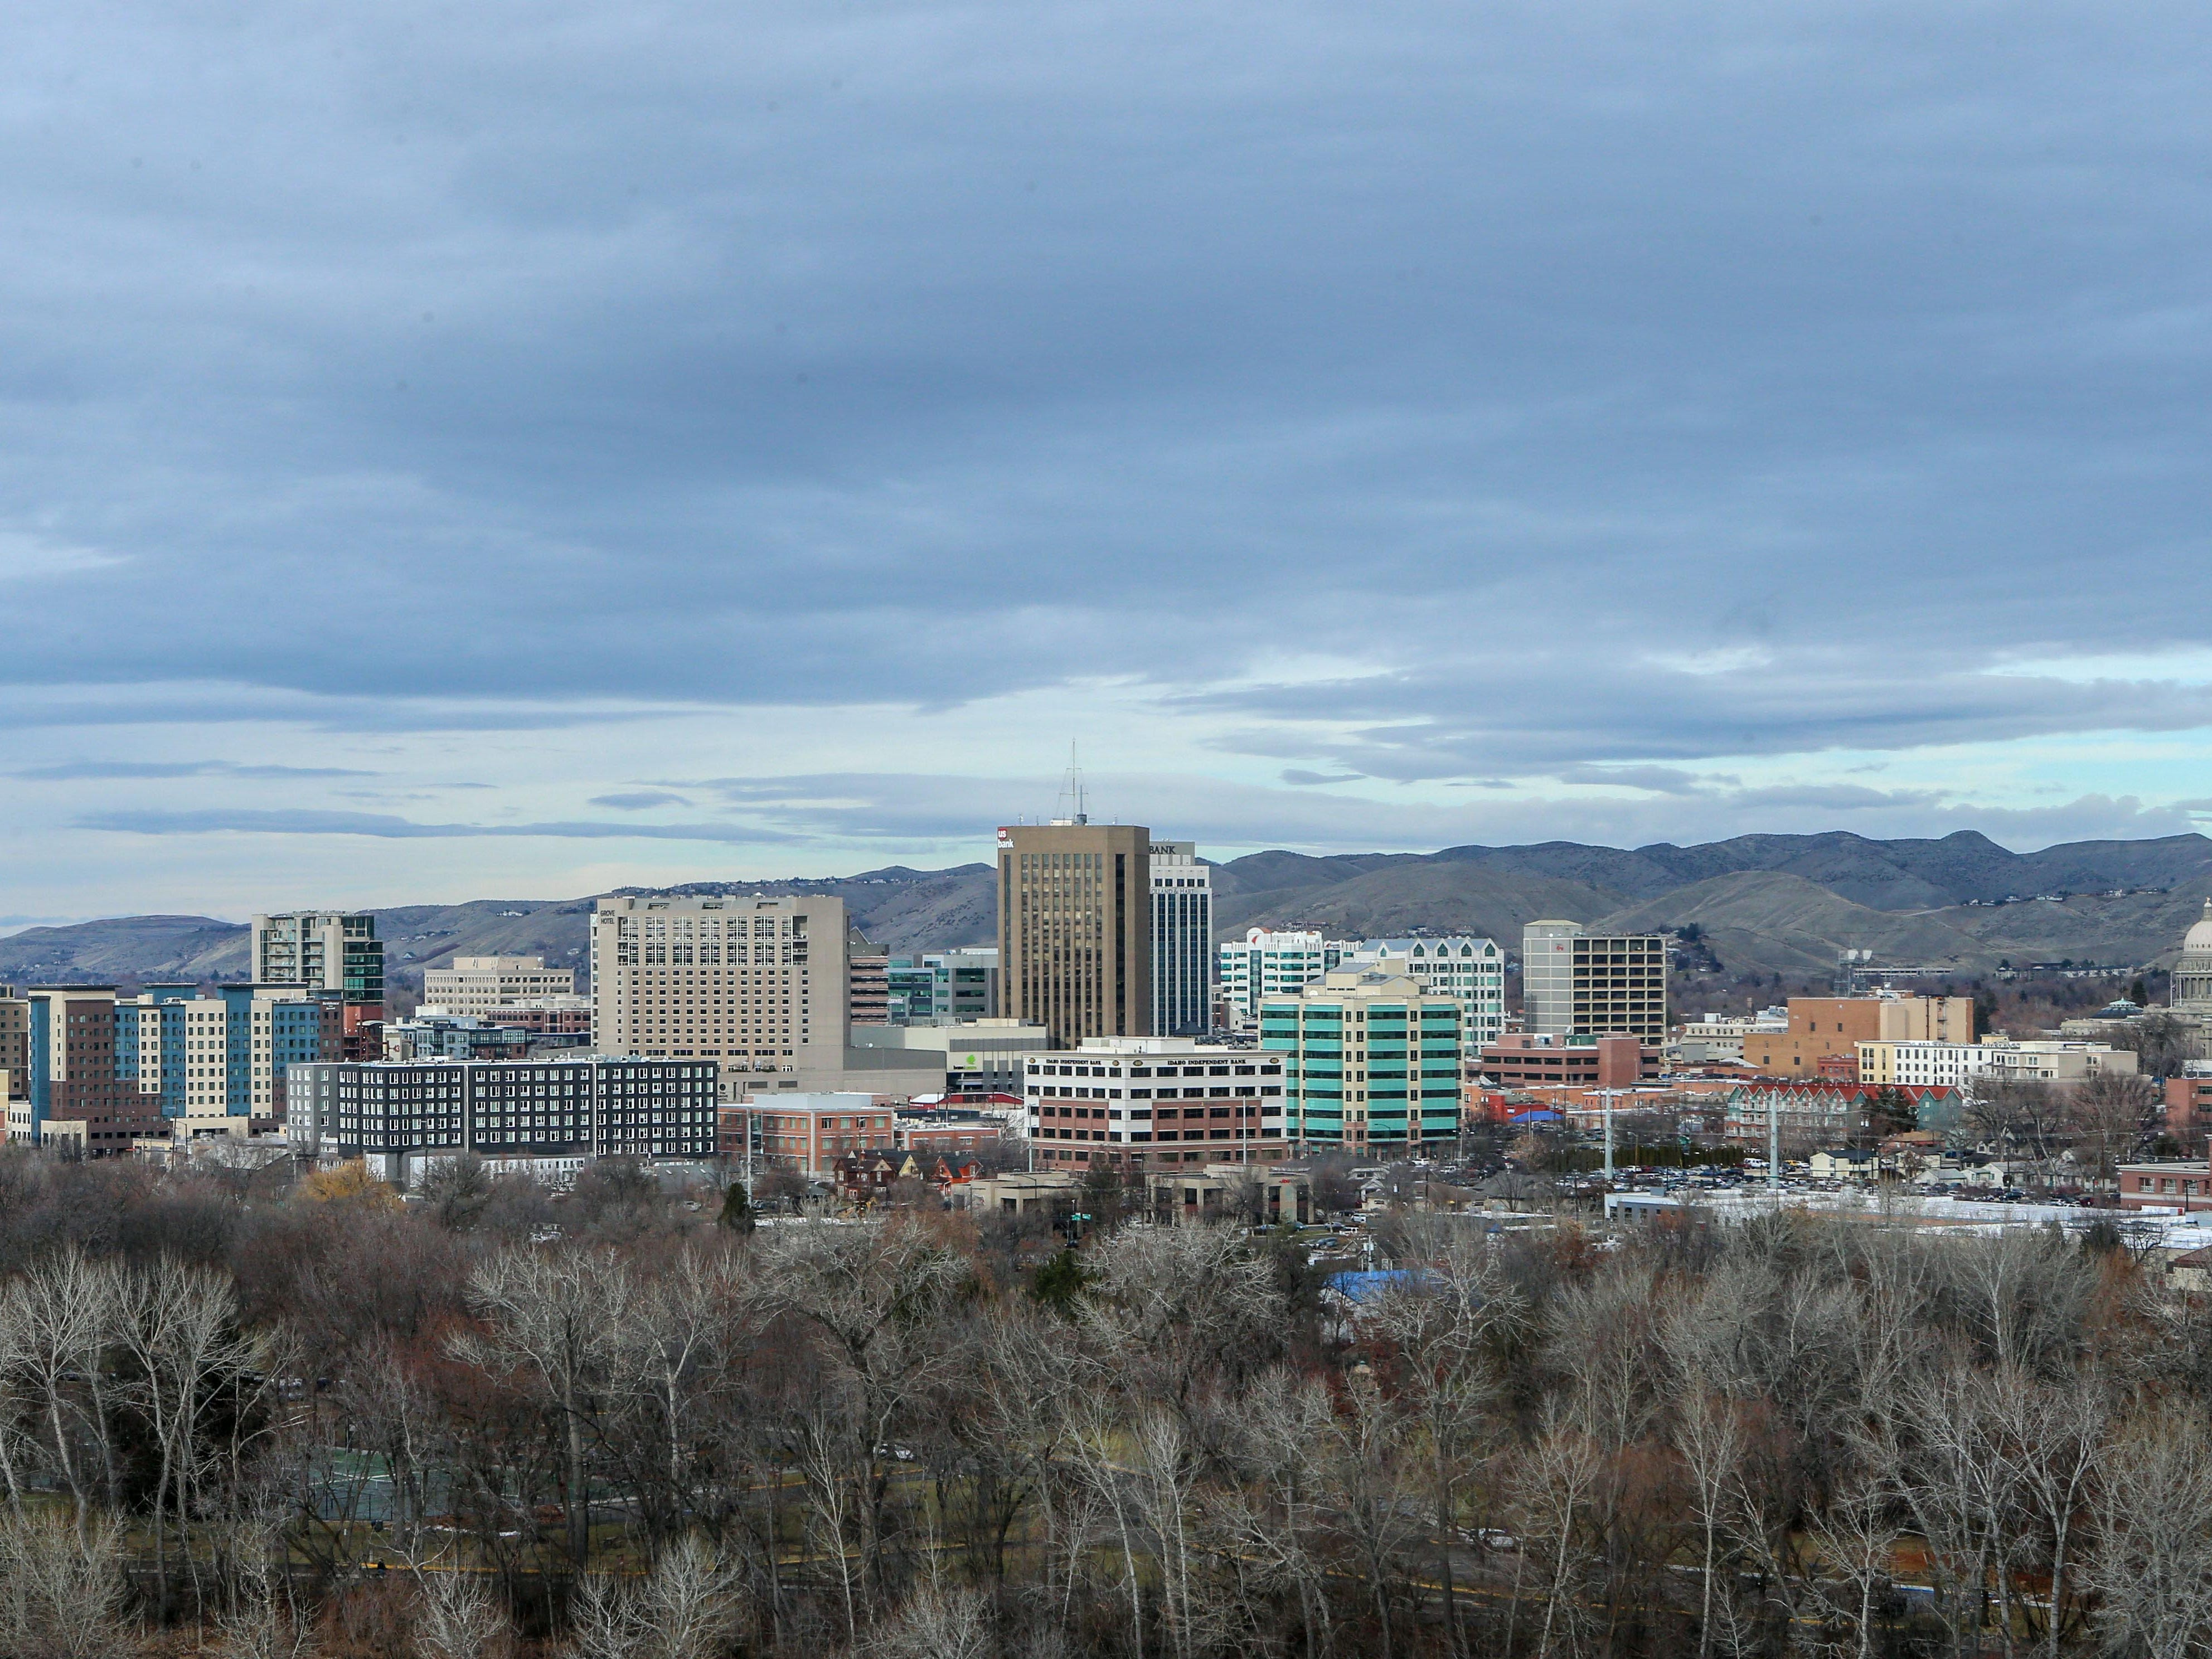 Dec 21, 2018; Boise, ID, United States; A general view of downtown Boise, Idaho  prior to the start of the 2018 Idaho Potato Bowl between BYU and Western Michigan.